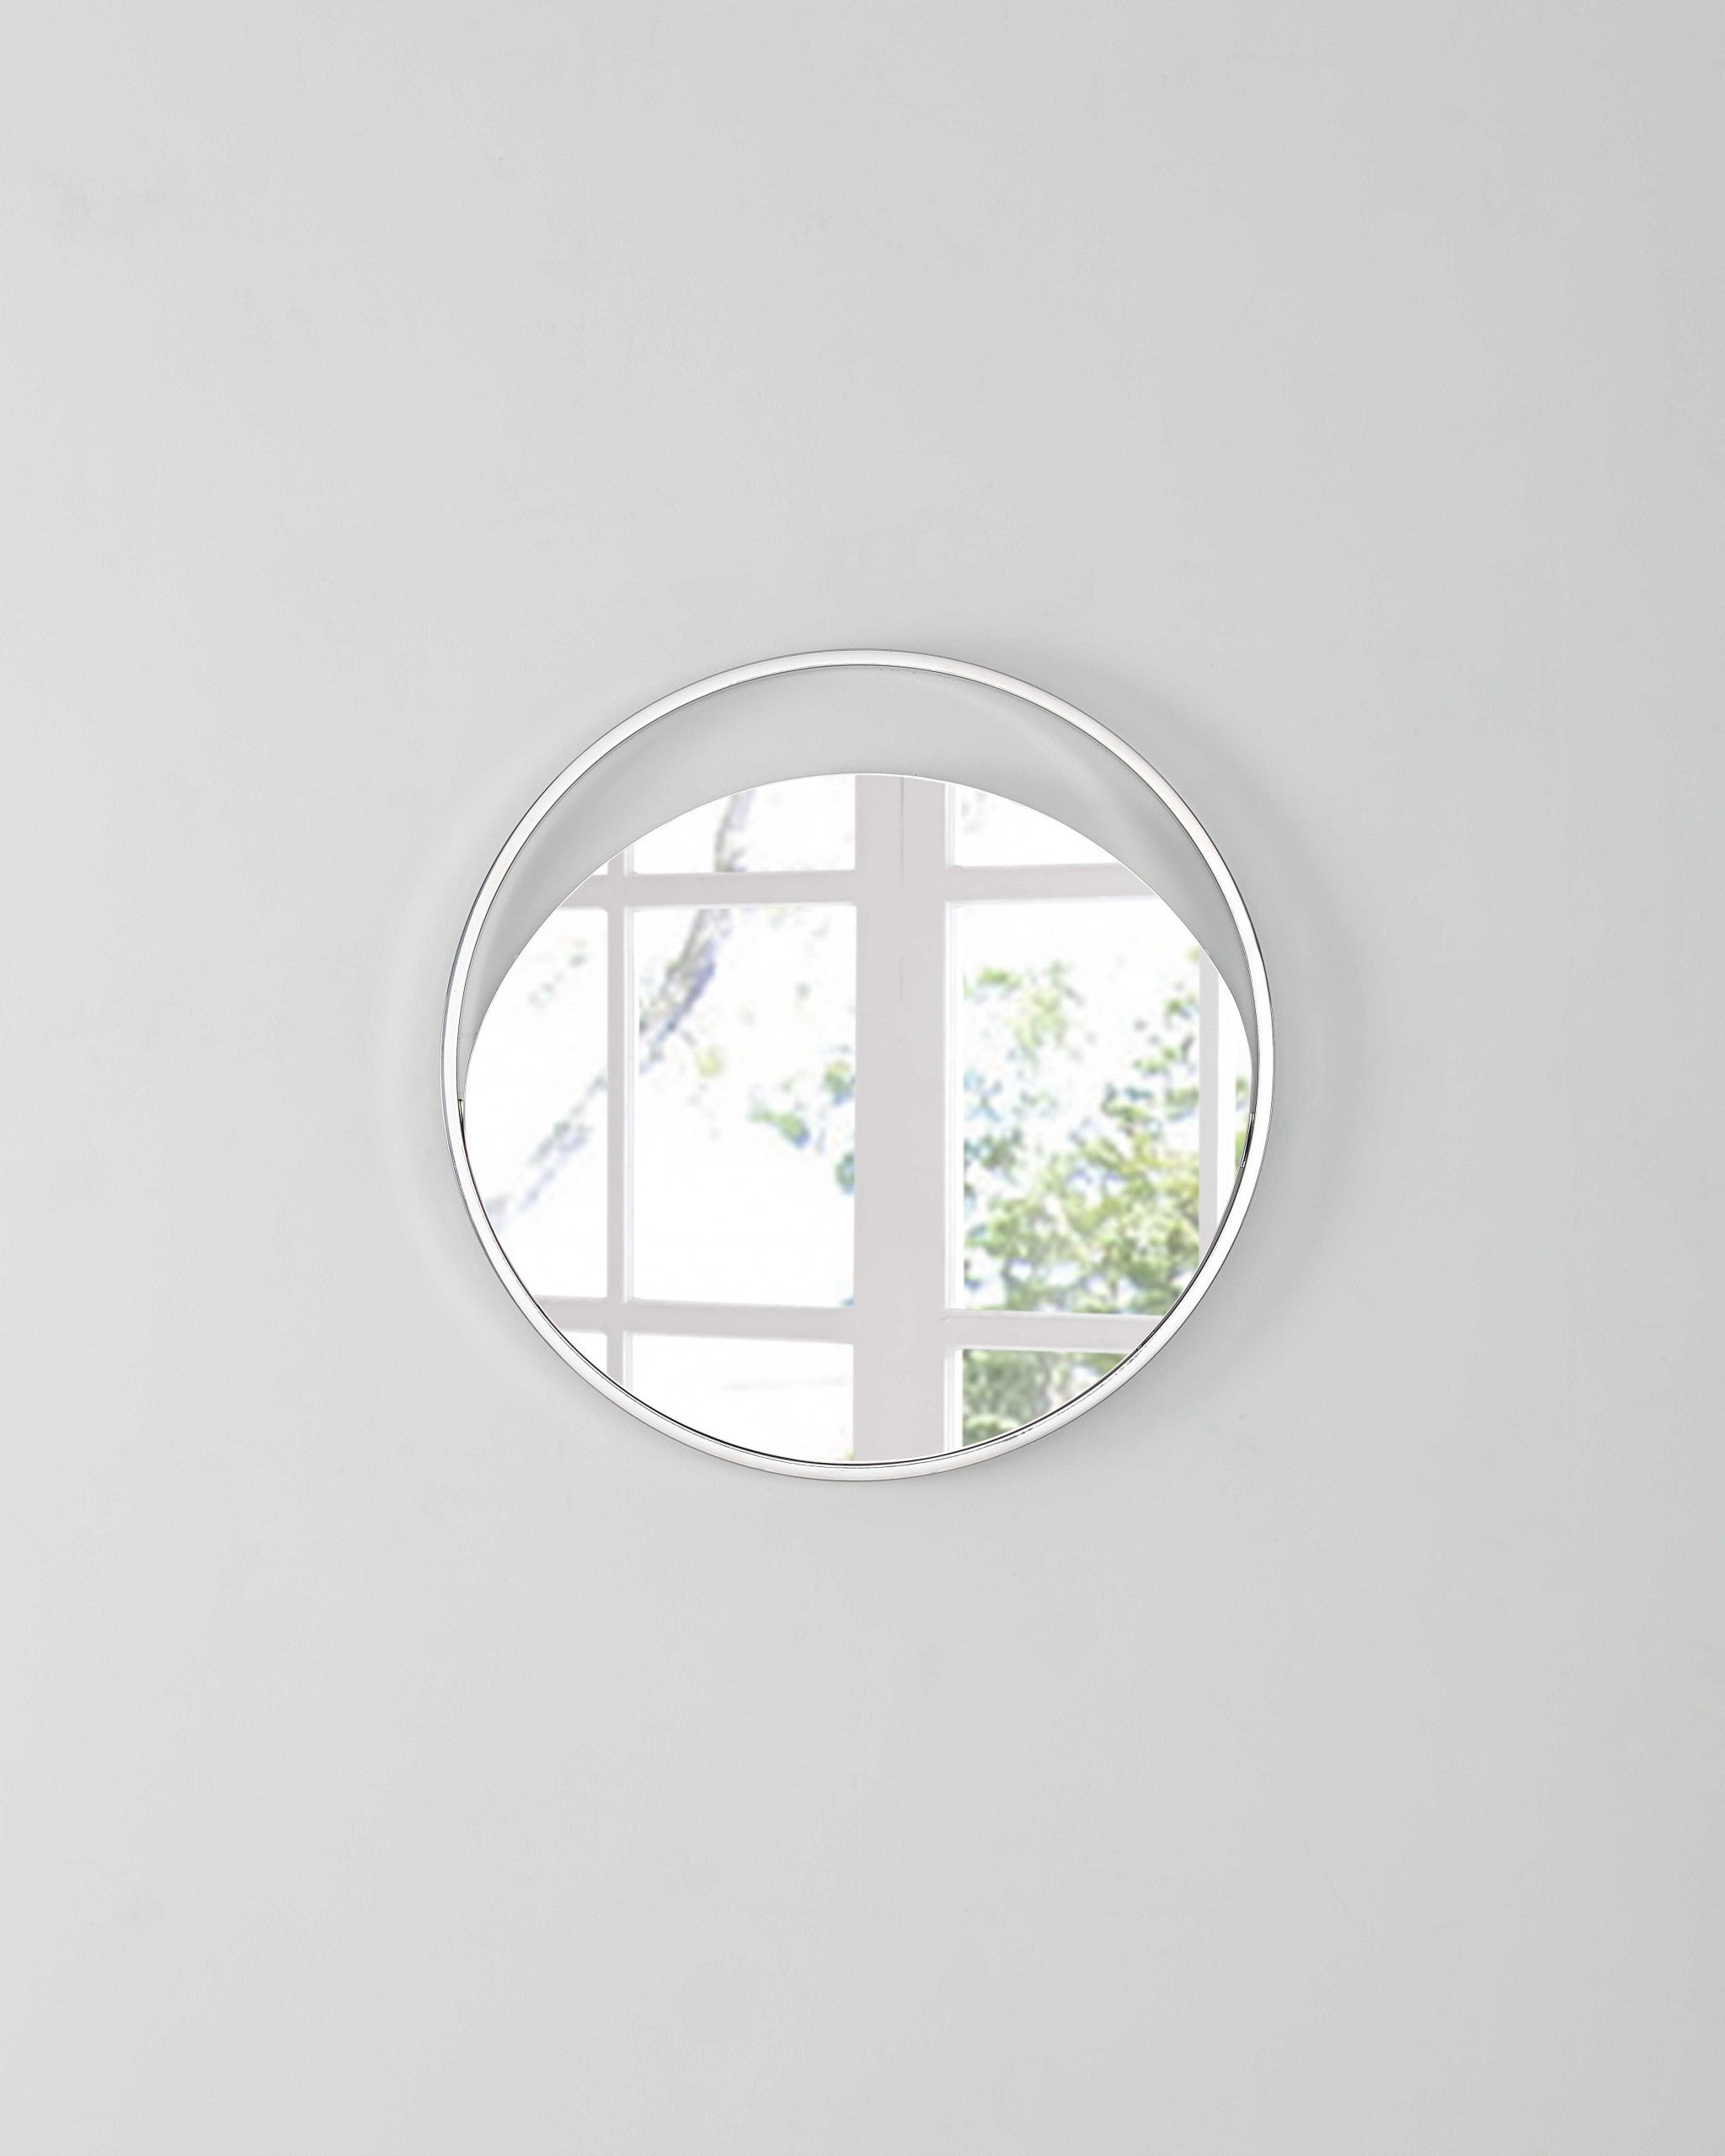 "23"" X 1.5"" X White Glass Small Round Mirror"